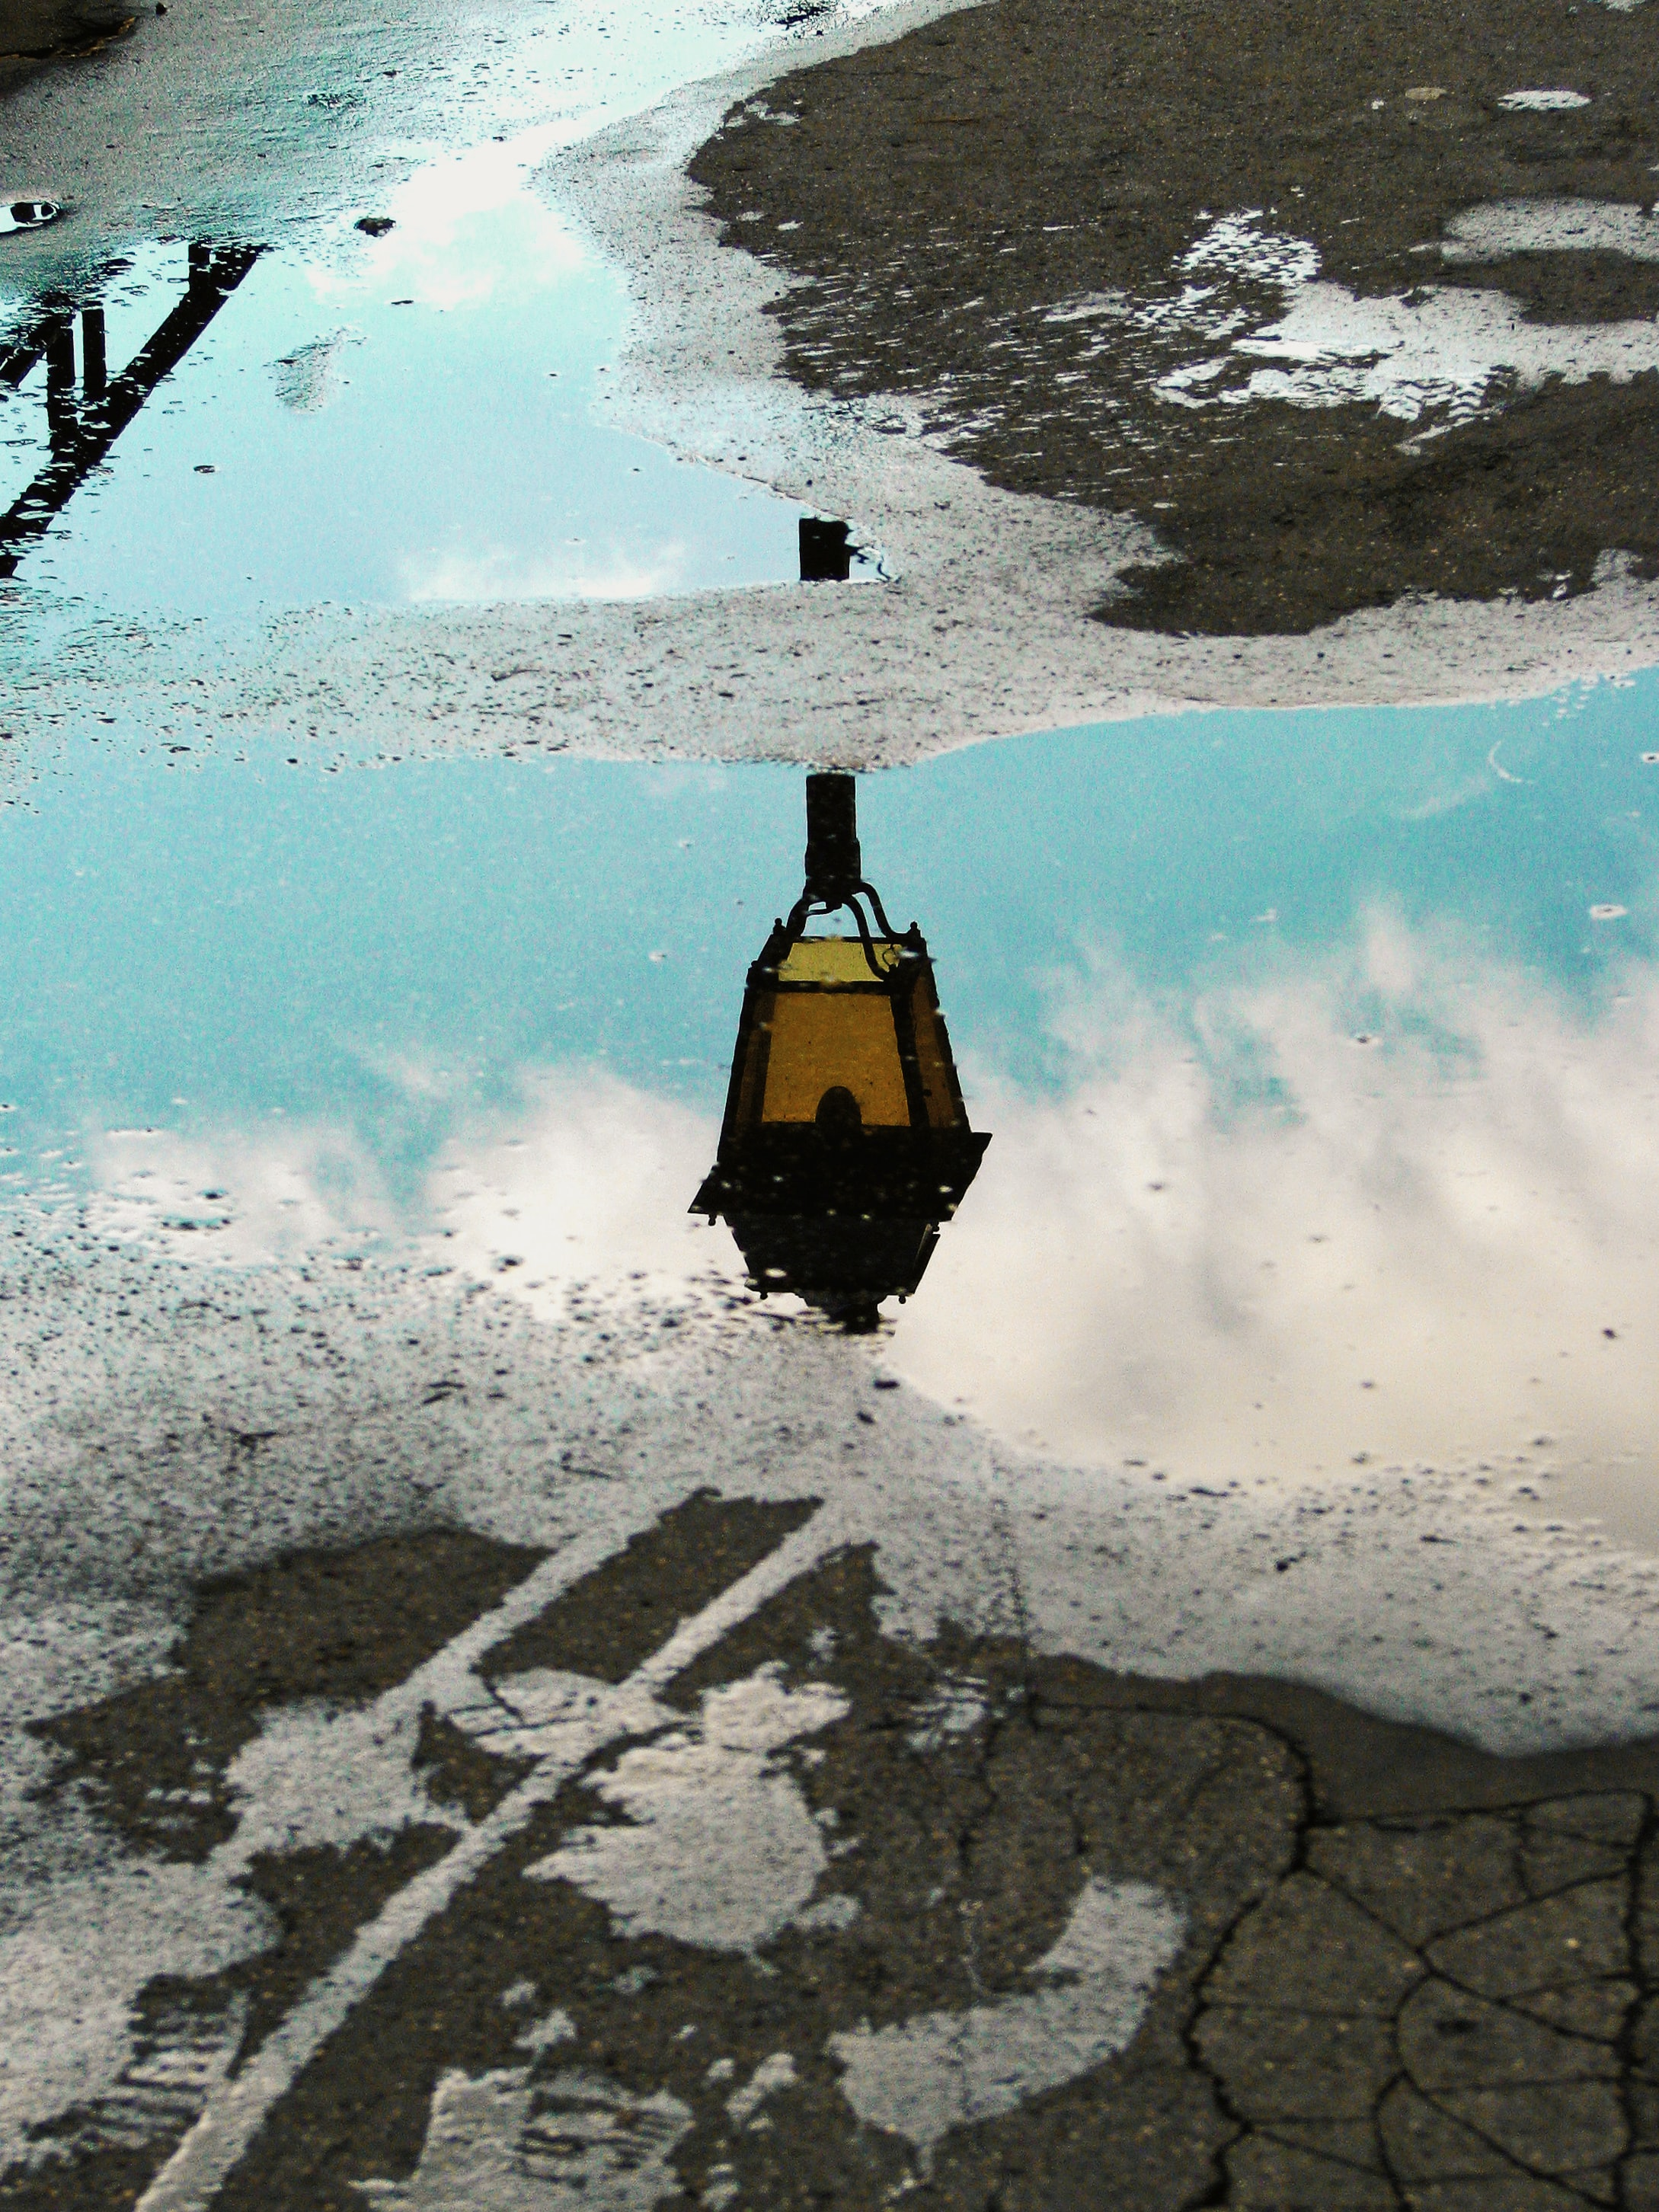 water mirror photography of street post